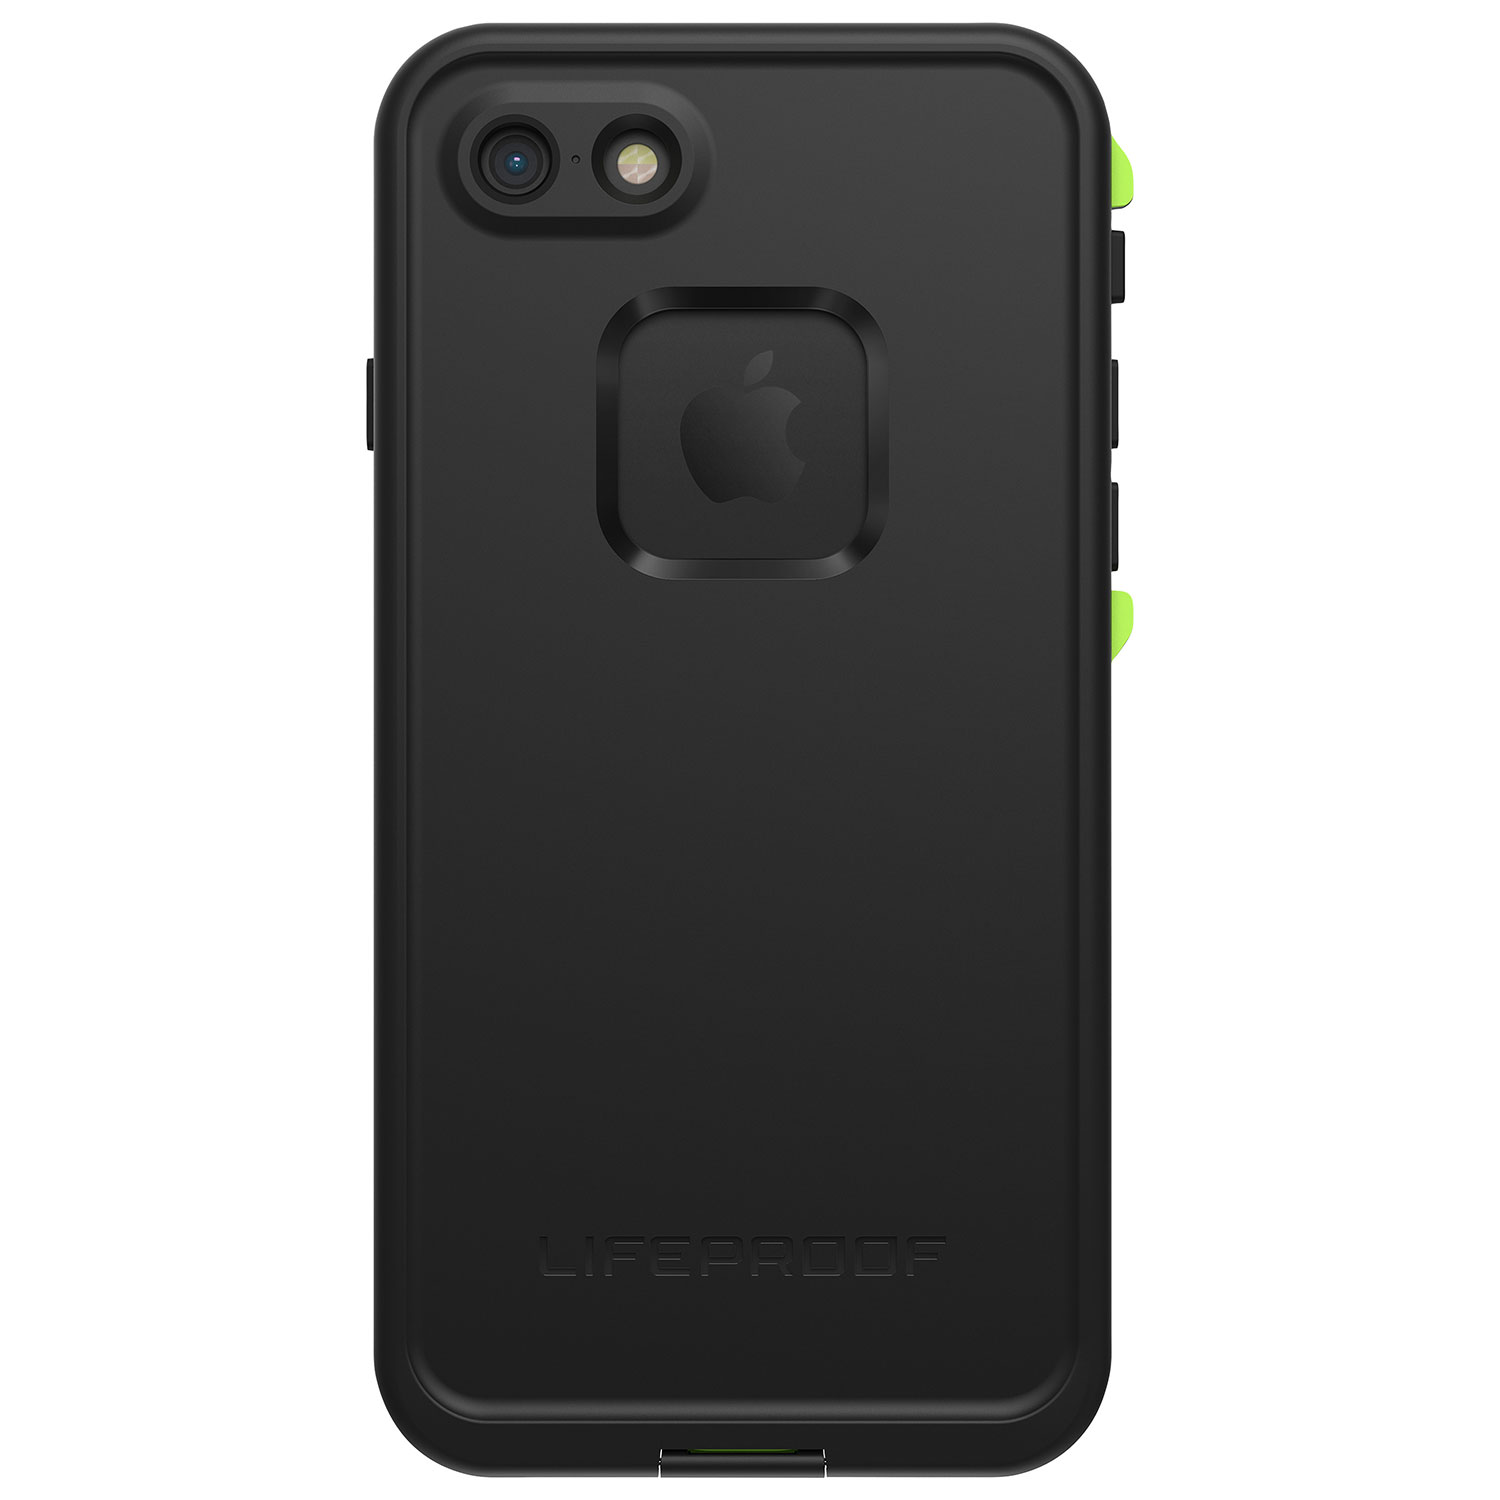 Lifeproof FRĒ Fitted Hard Shell Case for iPhone 8 7 - Black ddfc49eb2